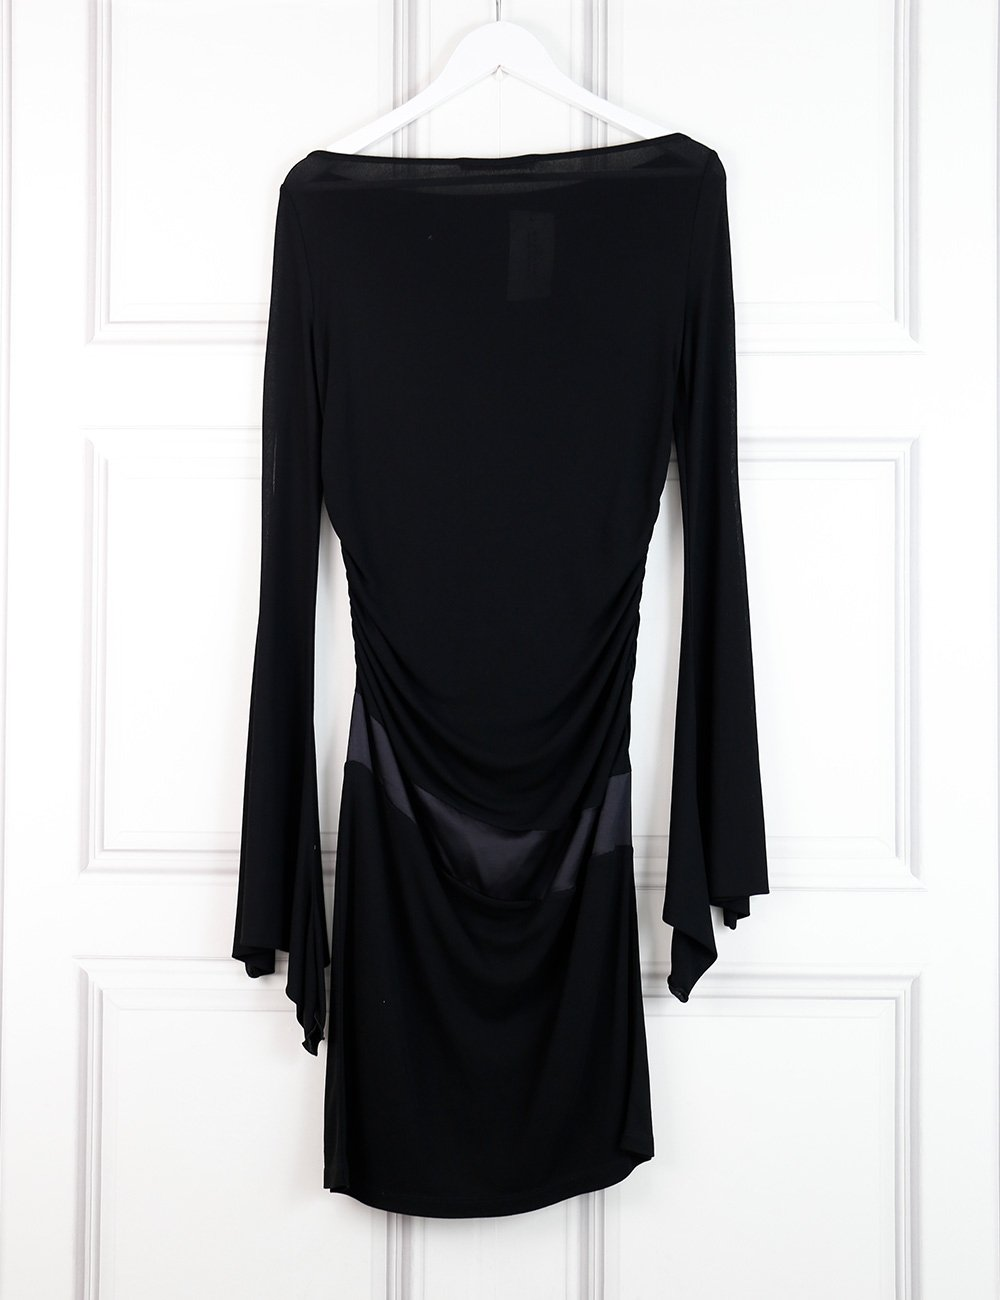 UNGARO black fitted dress with long sleeves 8UK- My Wardrobe Mistakes